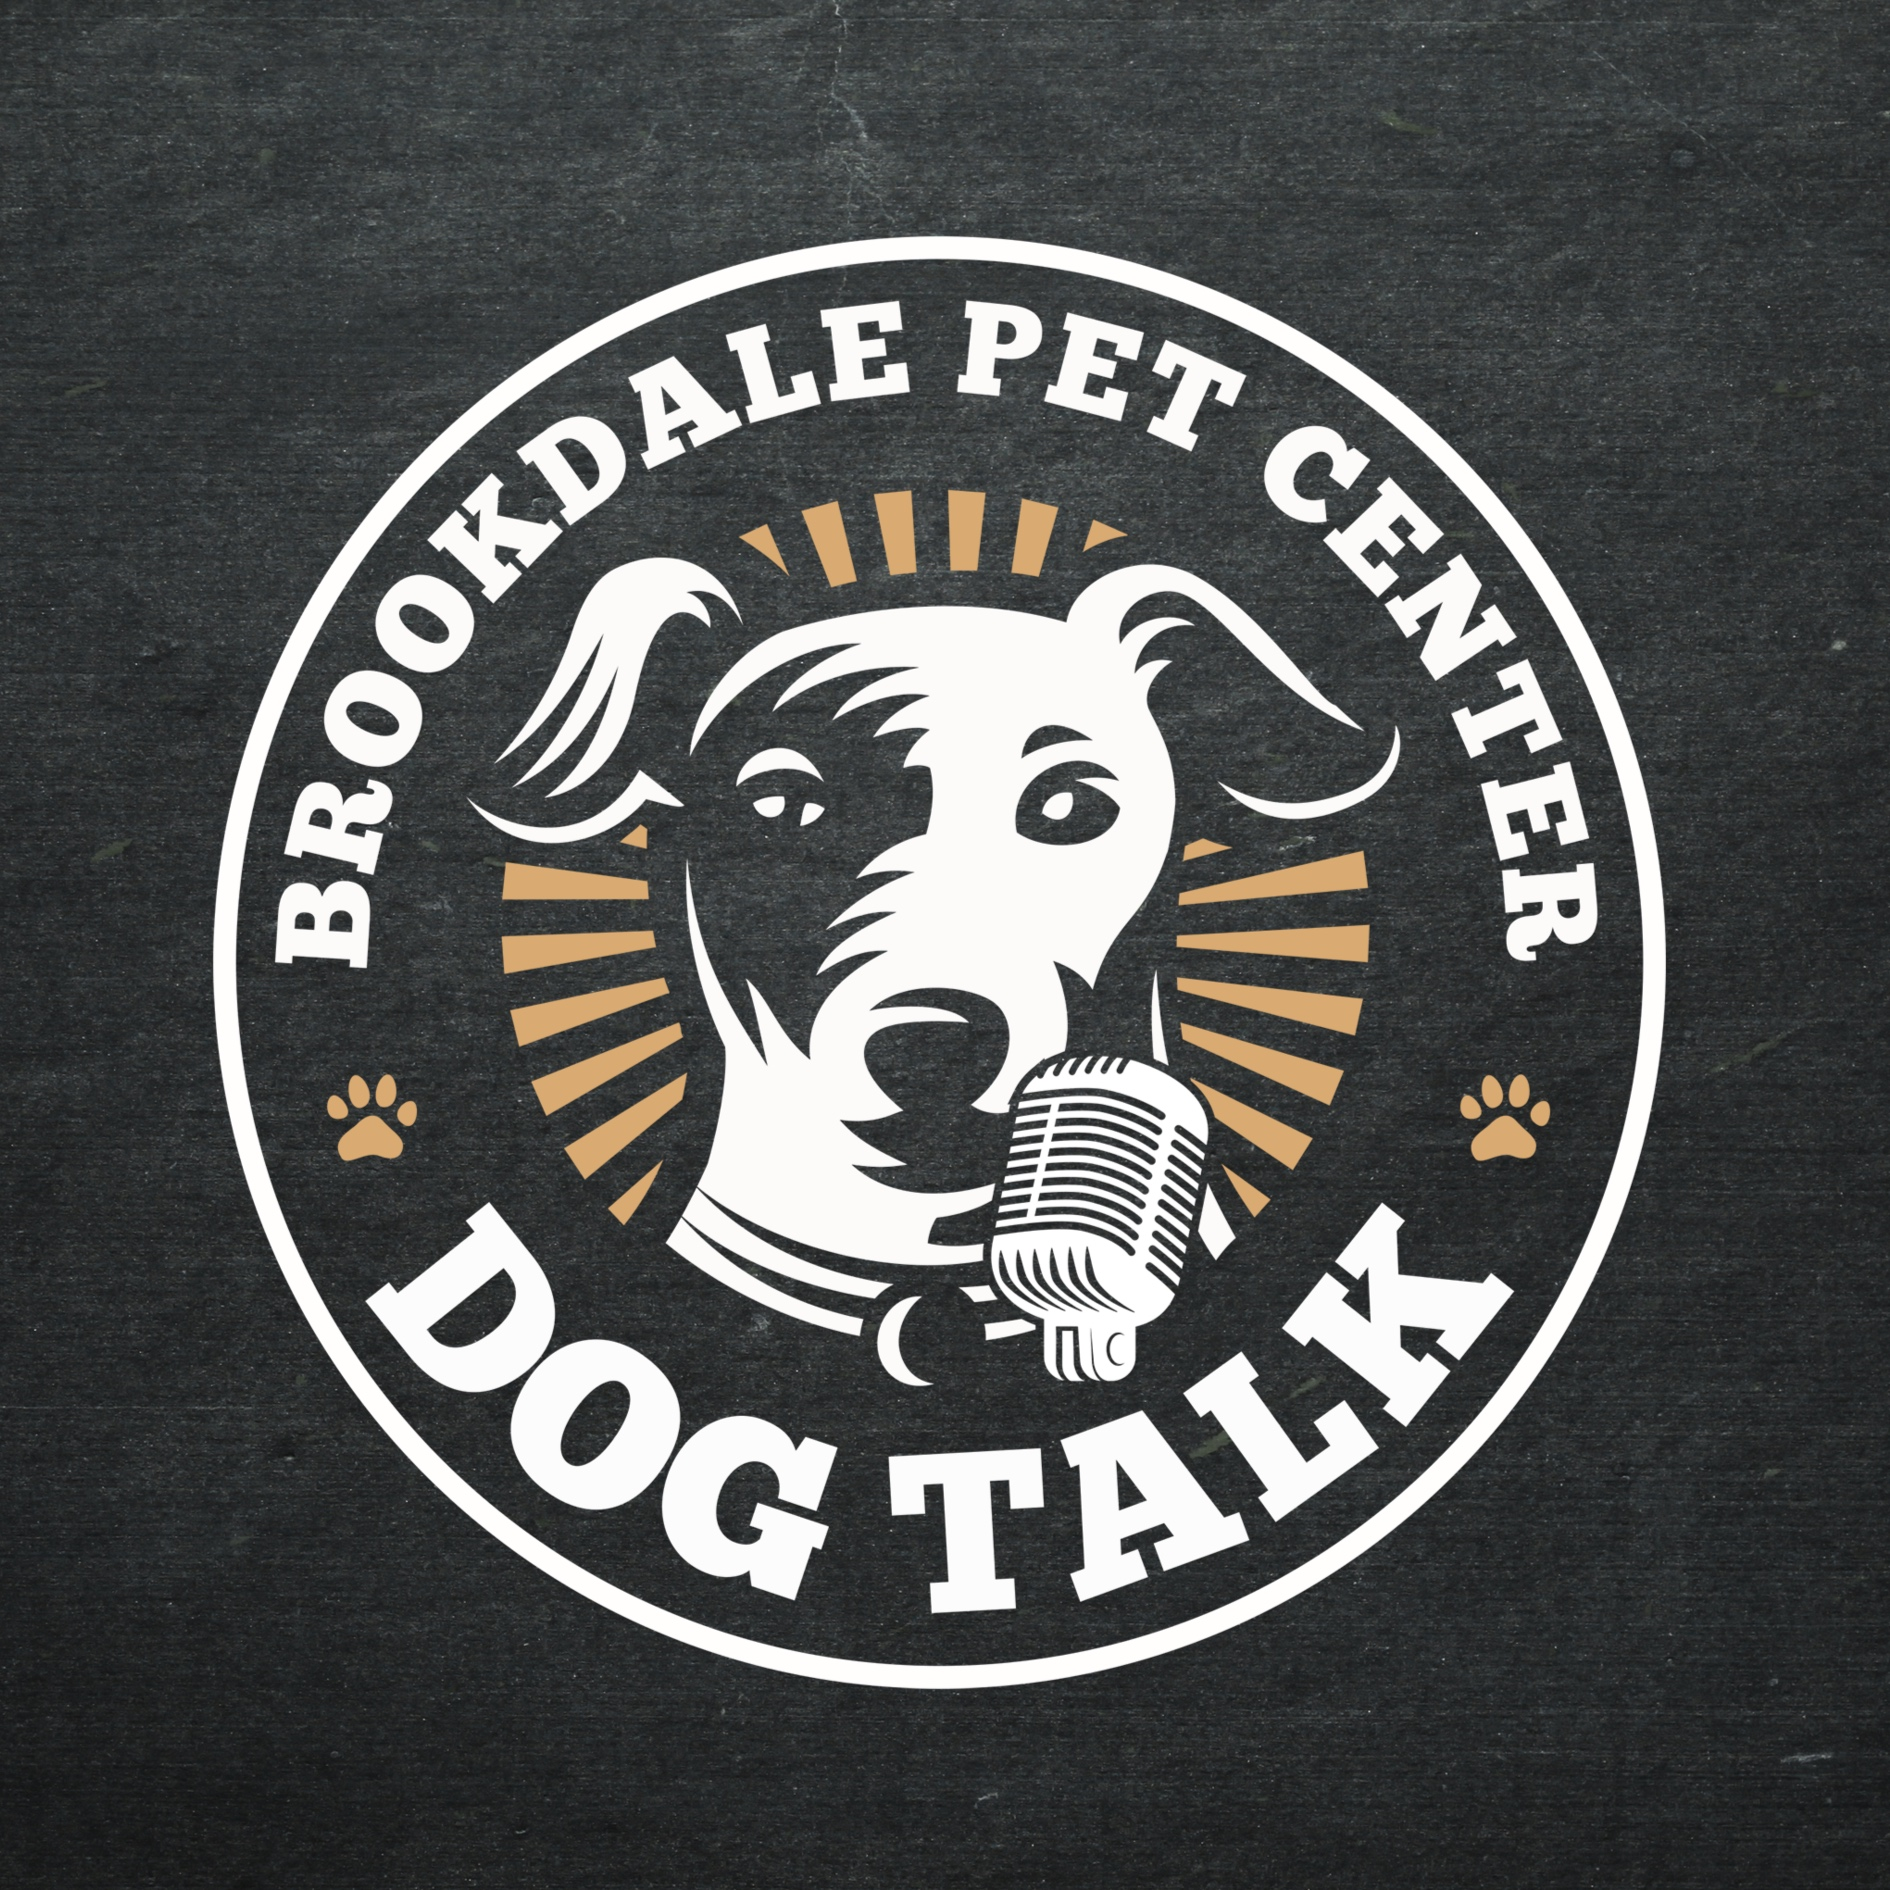 brookdale-pet-center-dog-talk2.png